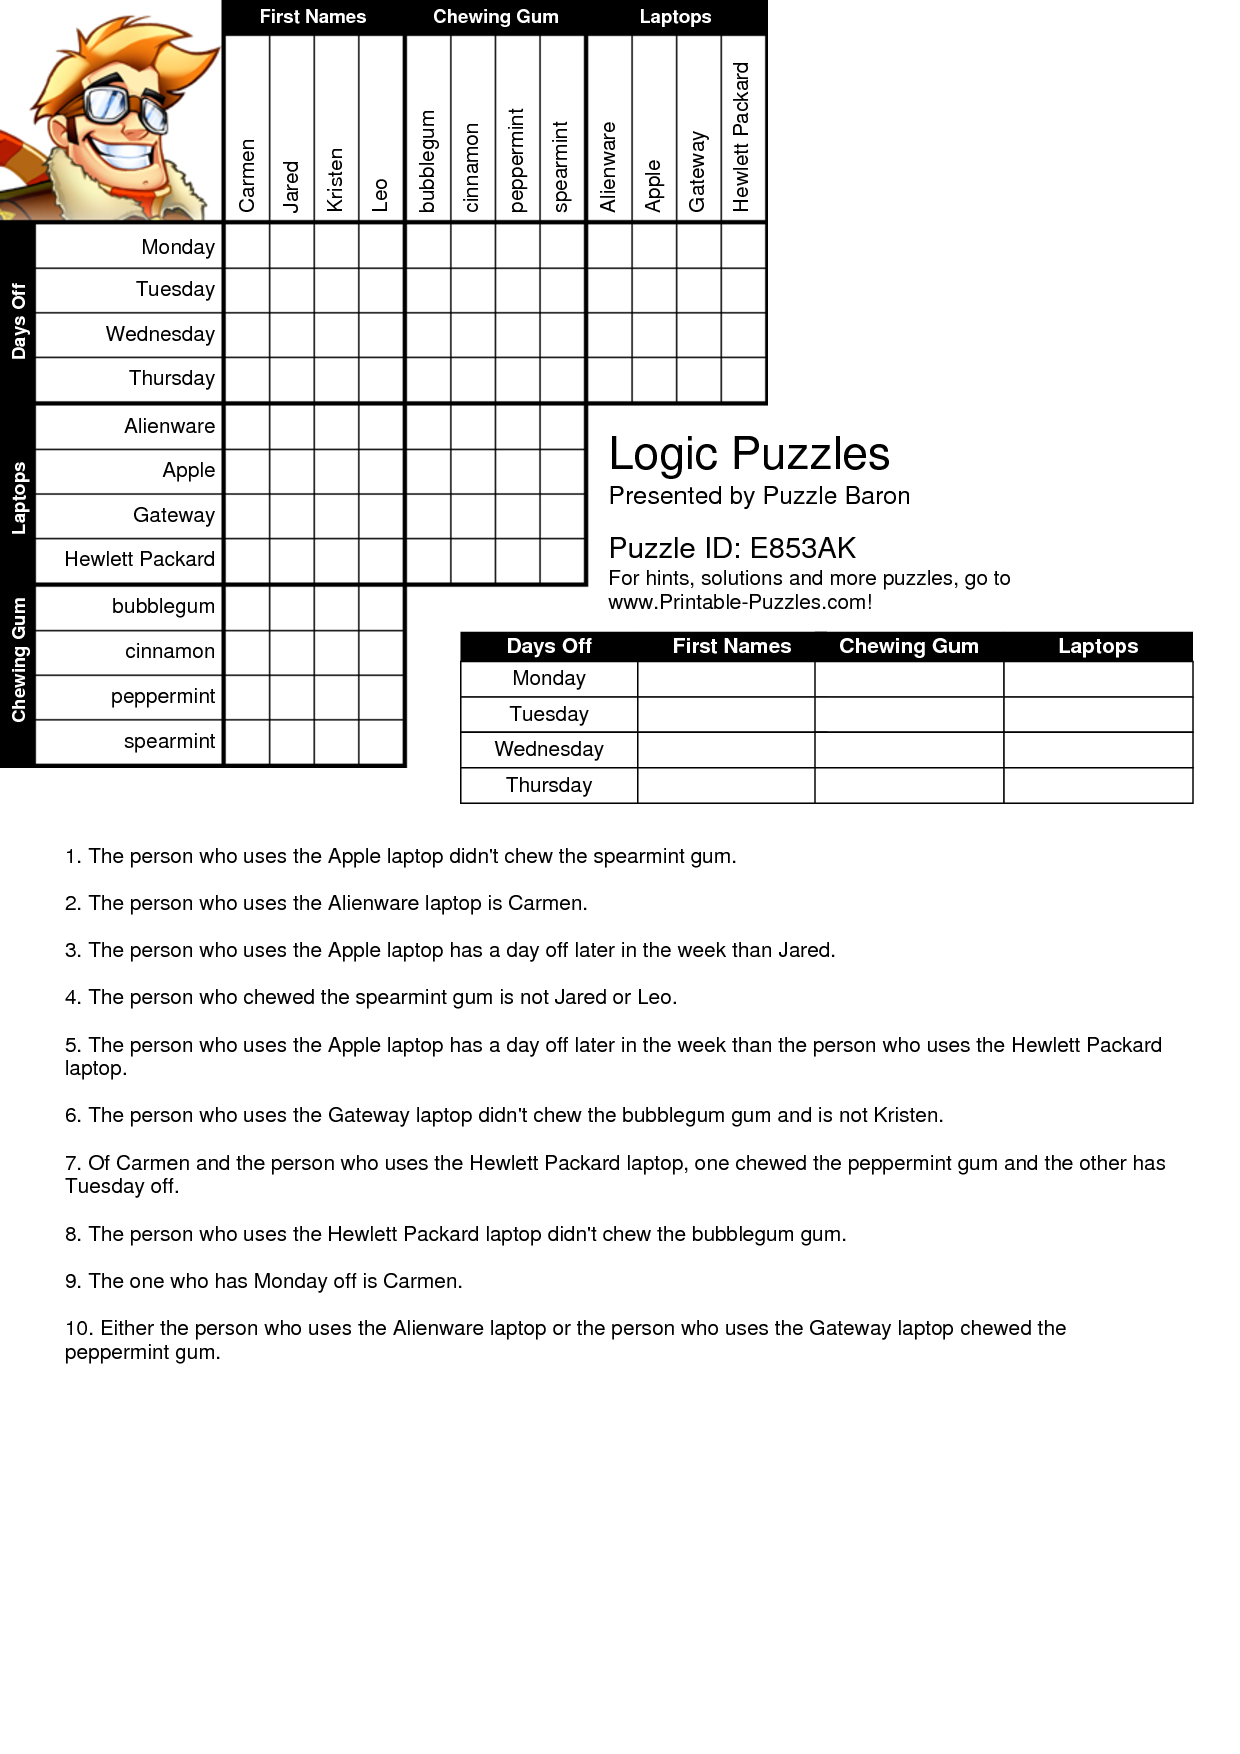 printable logic puzzles bnuauypi children 39 s arts crafts pinterest logic puzzles. Black Bedroom Furniture Sets. Home Design Ideas